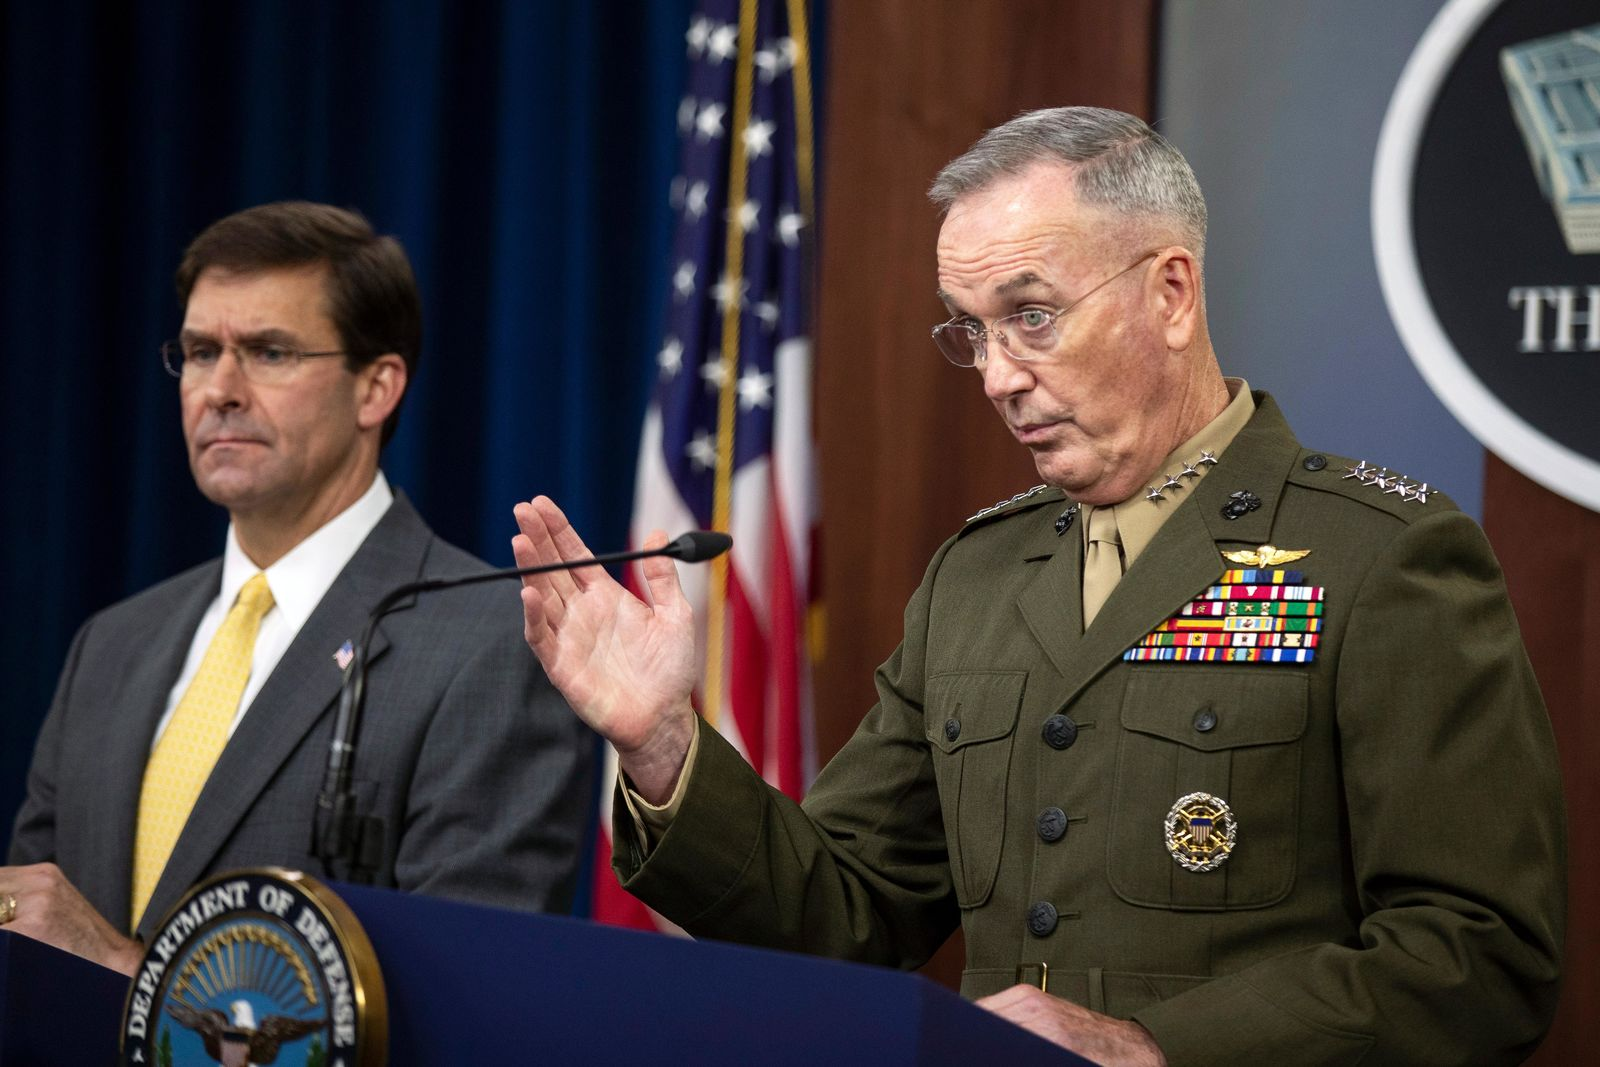 Joint Chiefs Chairman Gen. Joseph Dunford with Secretary of Defense Mark Esper speaks to reporters during a briefing at the Pentagon, Wednesday, Aug. 28, 2019. (AP Photo/Manuel Balce Ceneta)